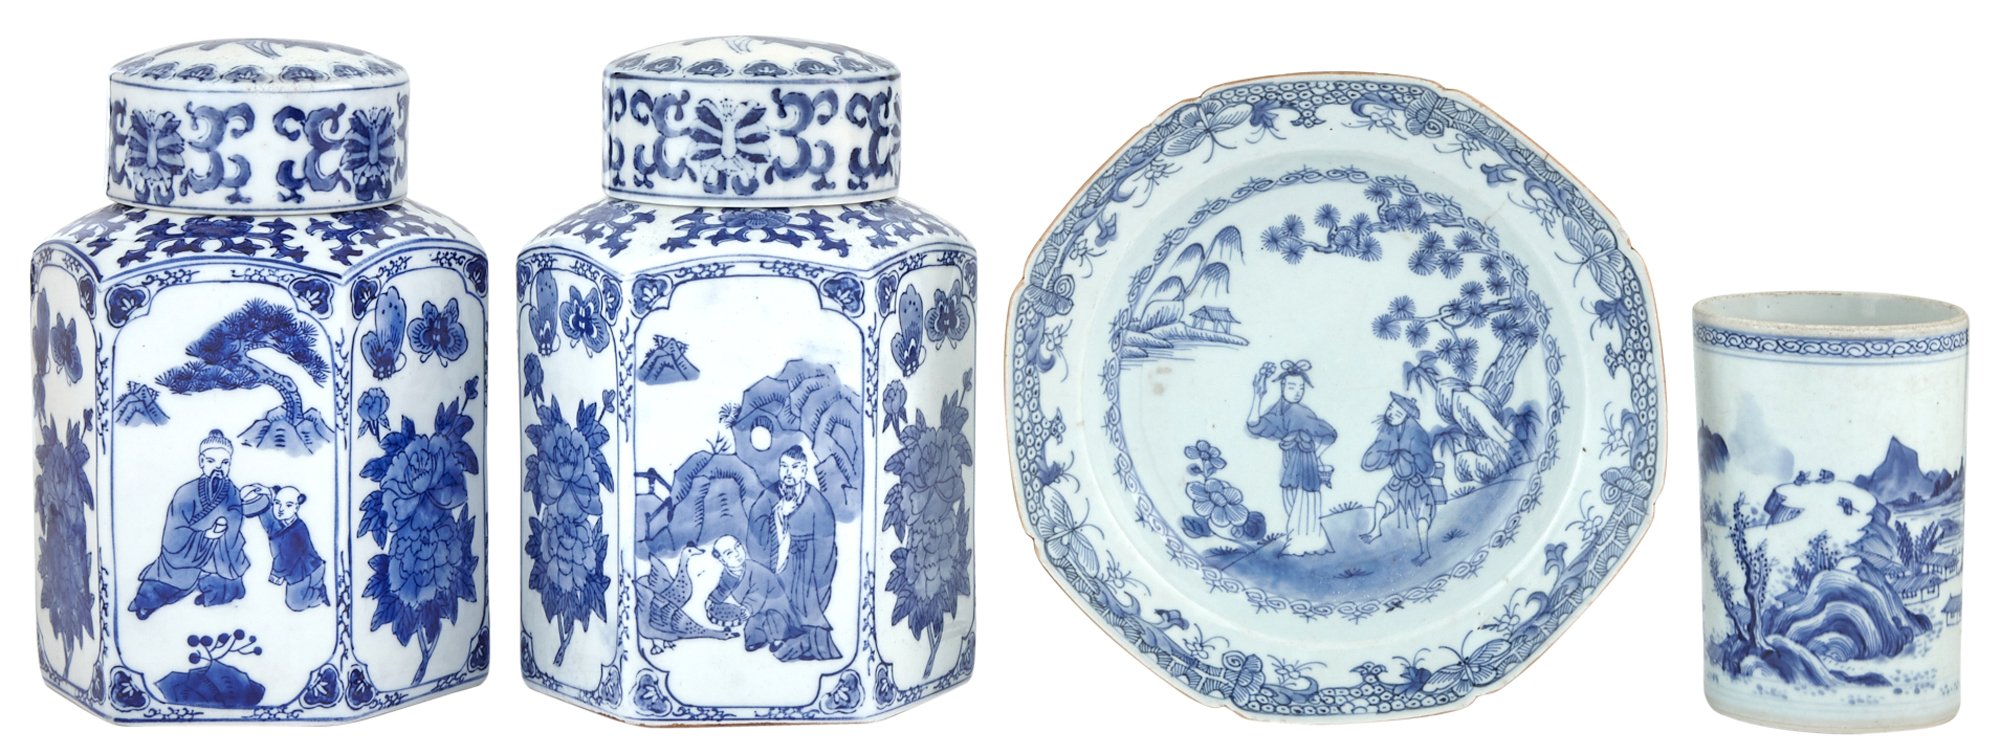 Lot image - Four Chinese Blue and White Porcelain Table Articles